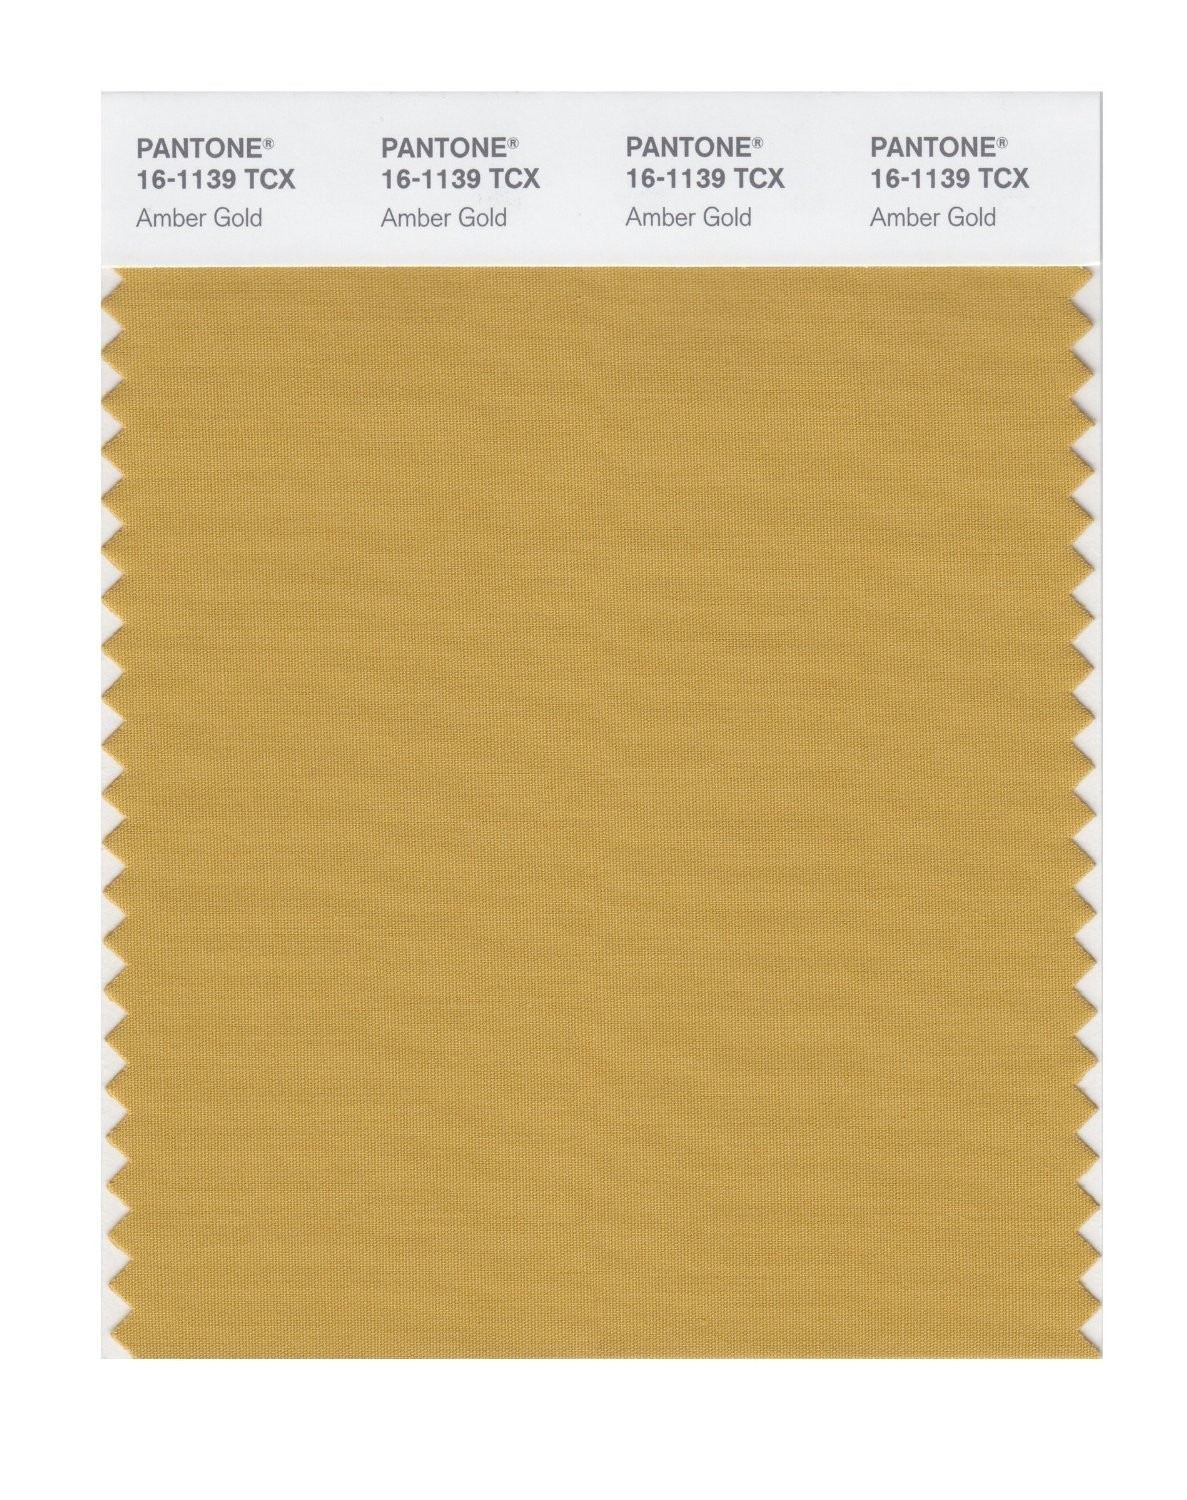 Pantone 16-1139 TCX Swatch Card Amber Gold